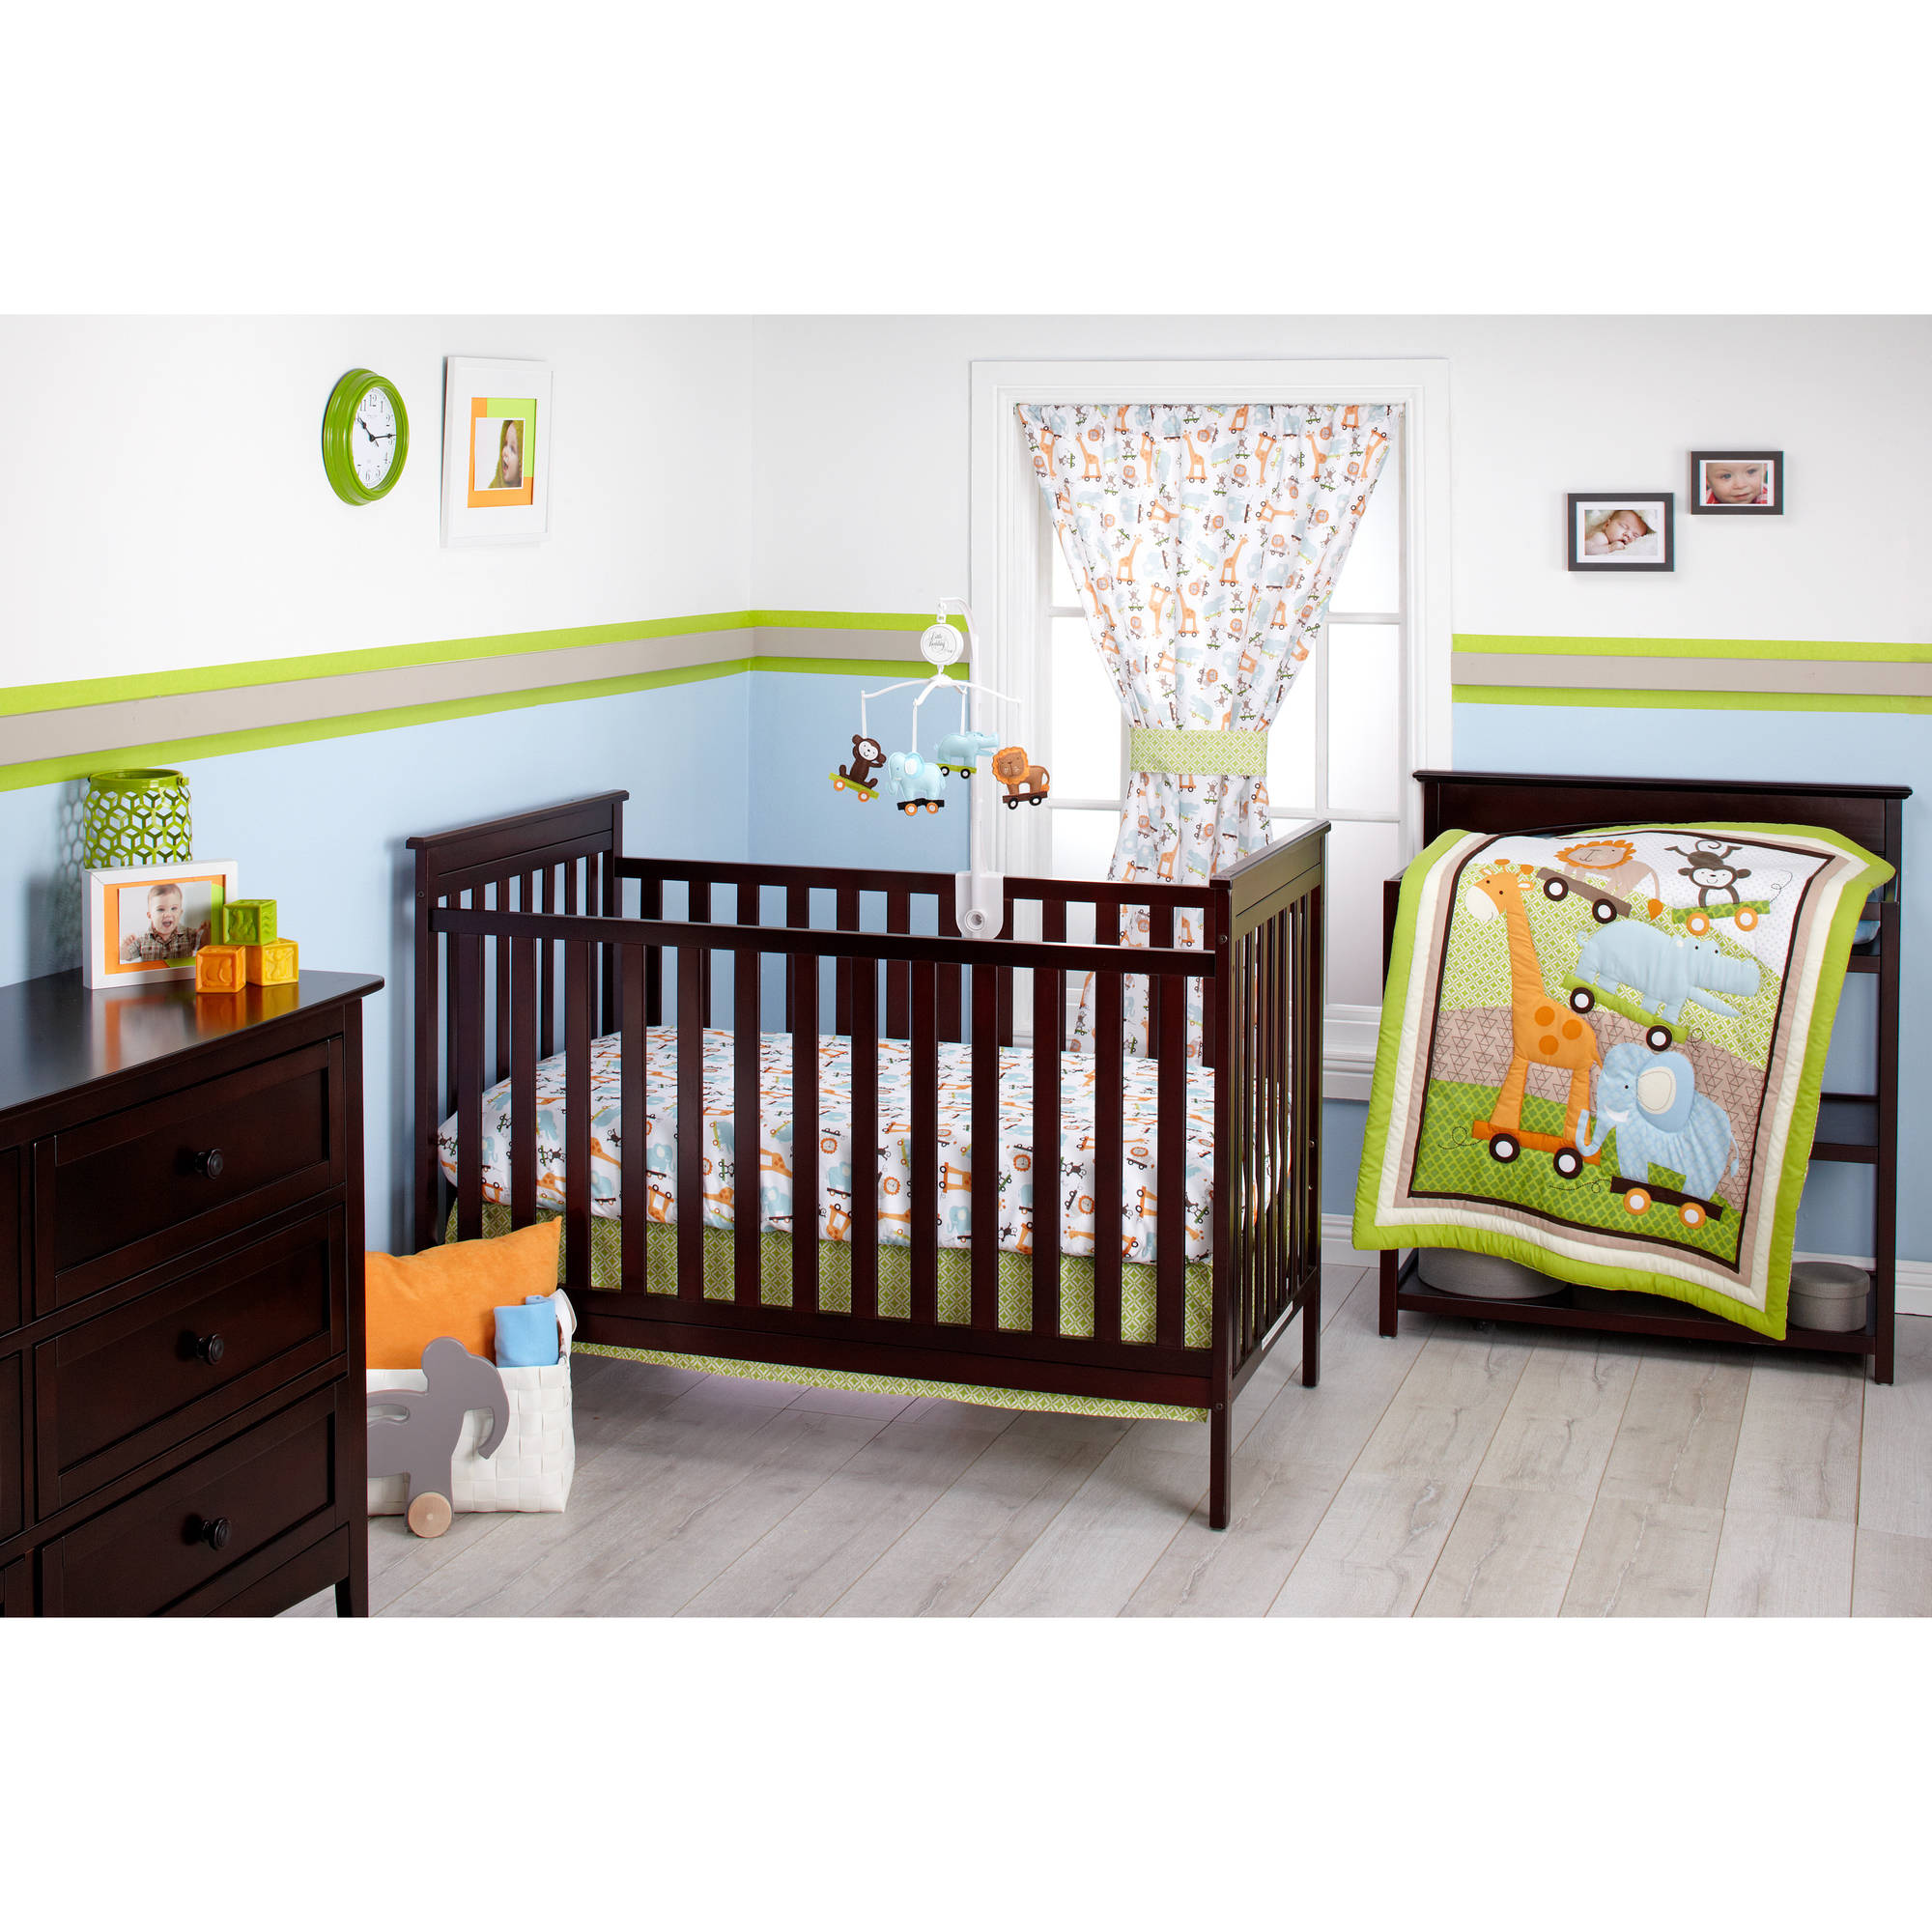 Little Bedding by NoJo Critter Pals 3-Piece Crib Bedding Set